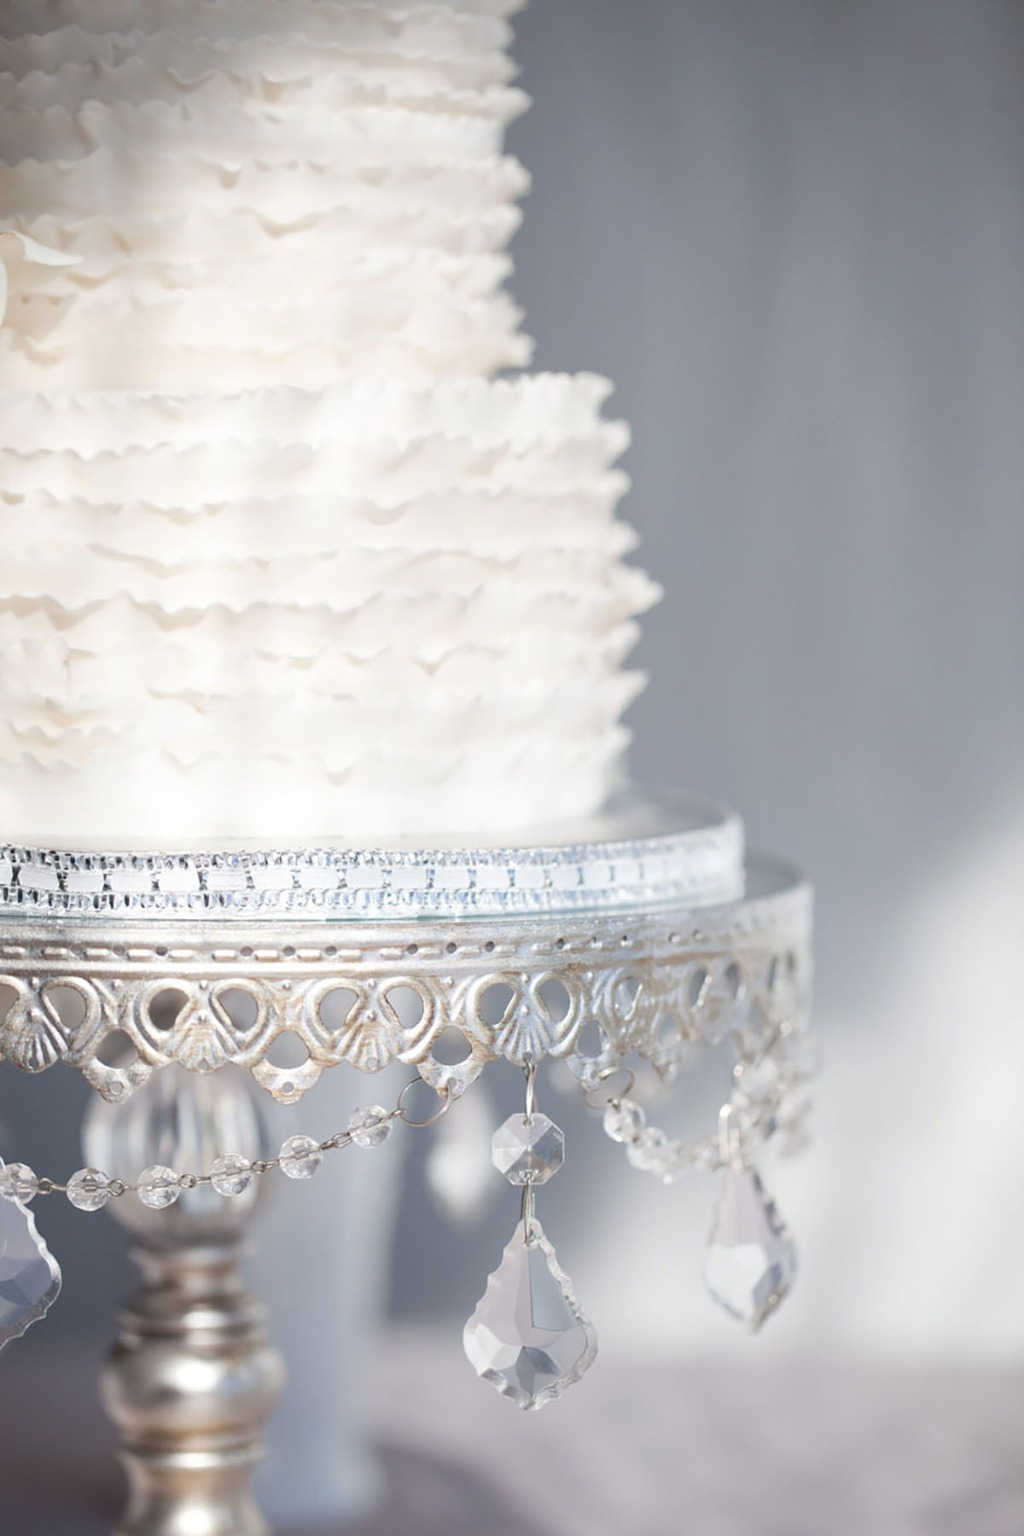 Wedding Details! The perfect wedding cake stand...Antique Silver Chandelier Cake Stand created by Opulent Treasures. Photography by